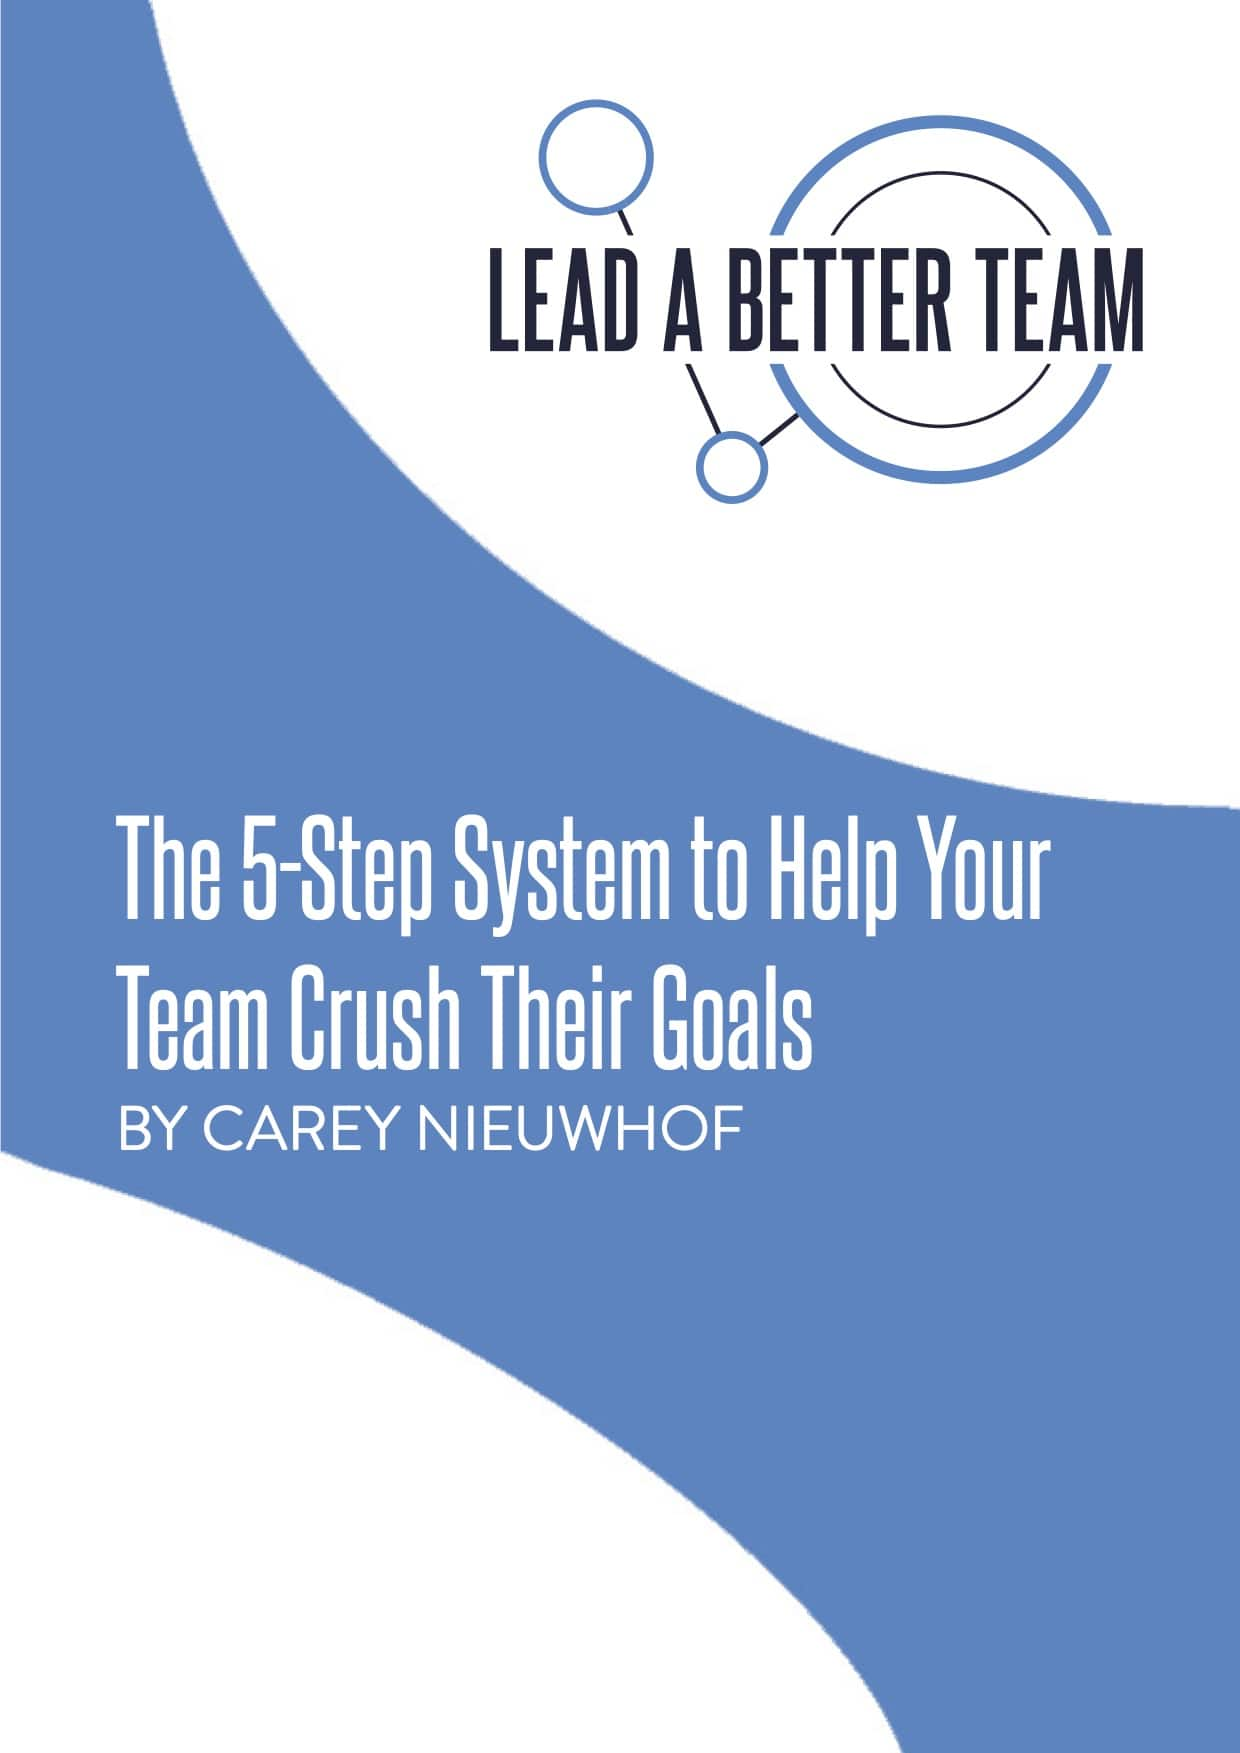 The Five-Step System to Help Your Team Crush Their Goals v3